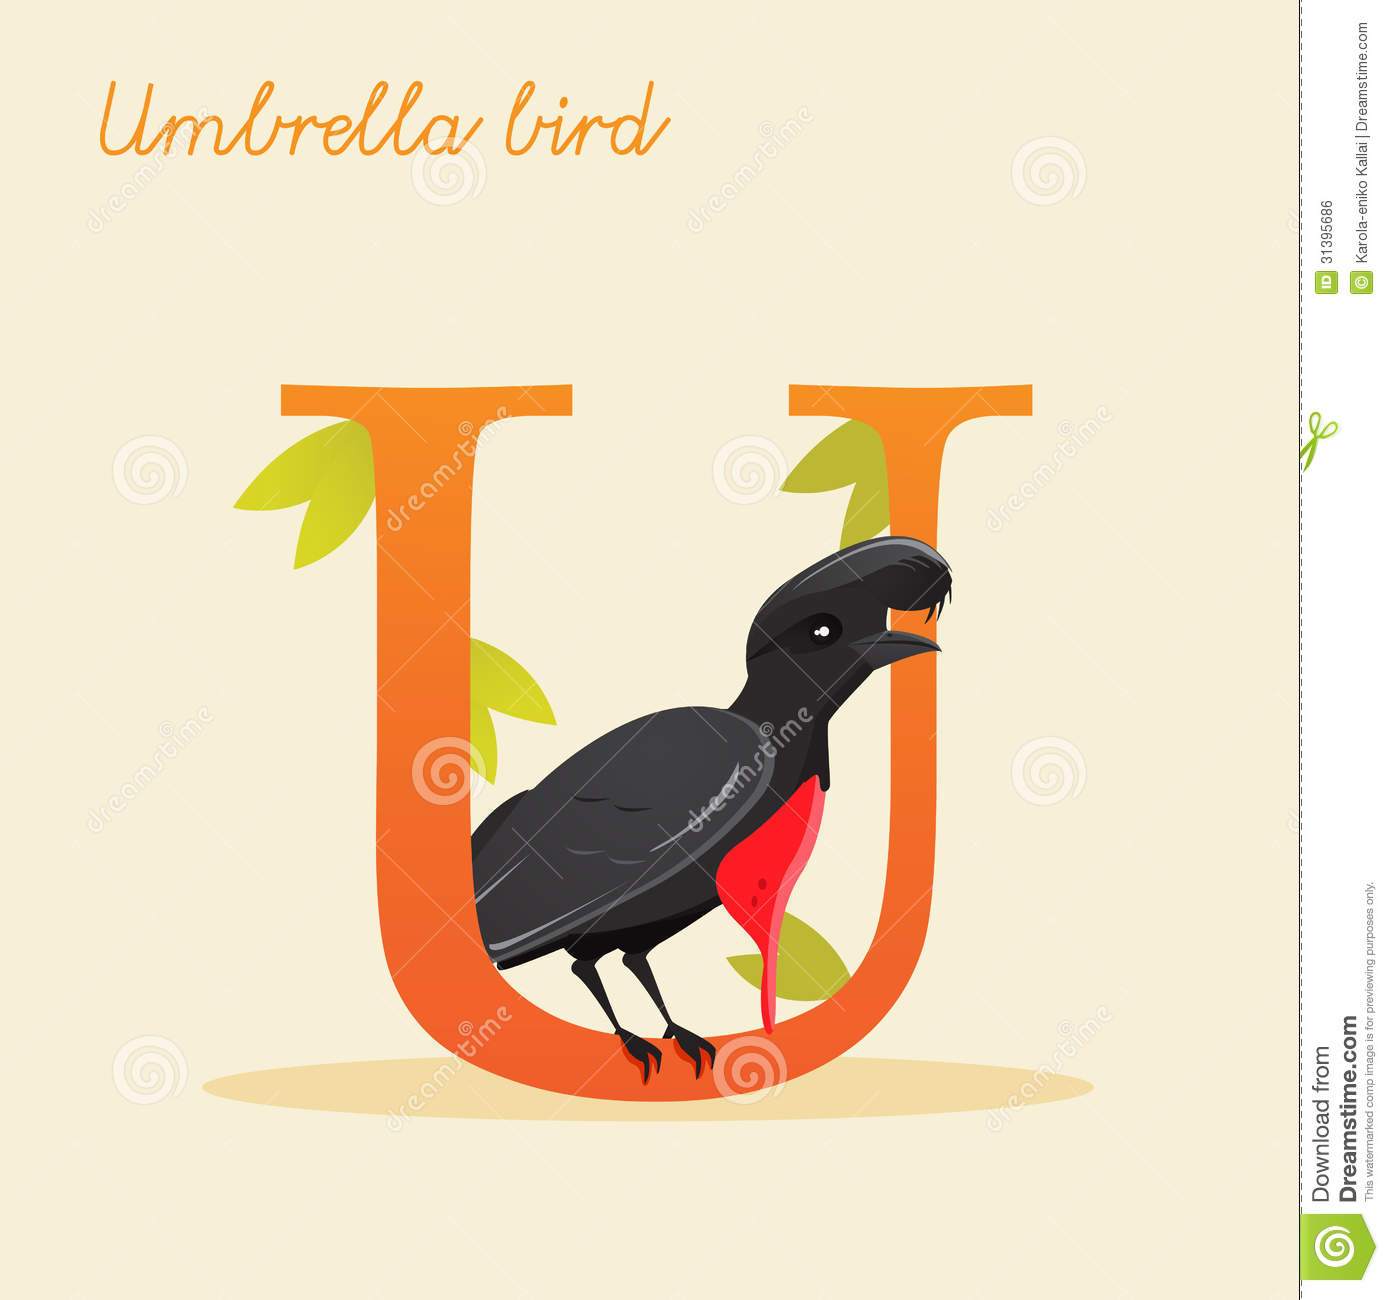 Animal Alphabet With Umbrella Bird Royalty Free Stock Image